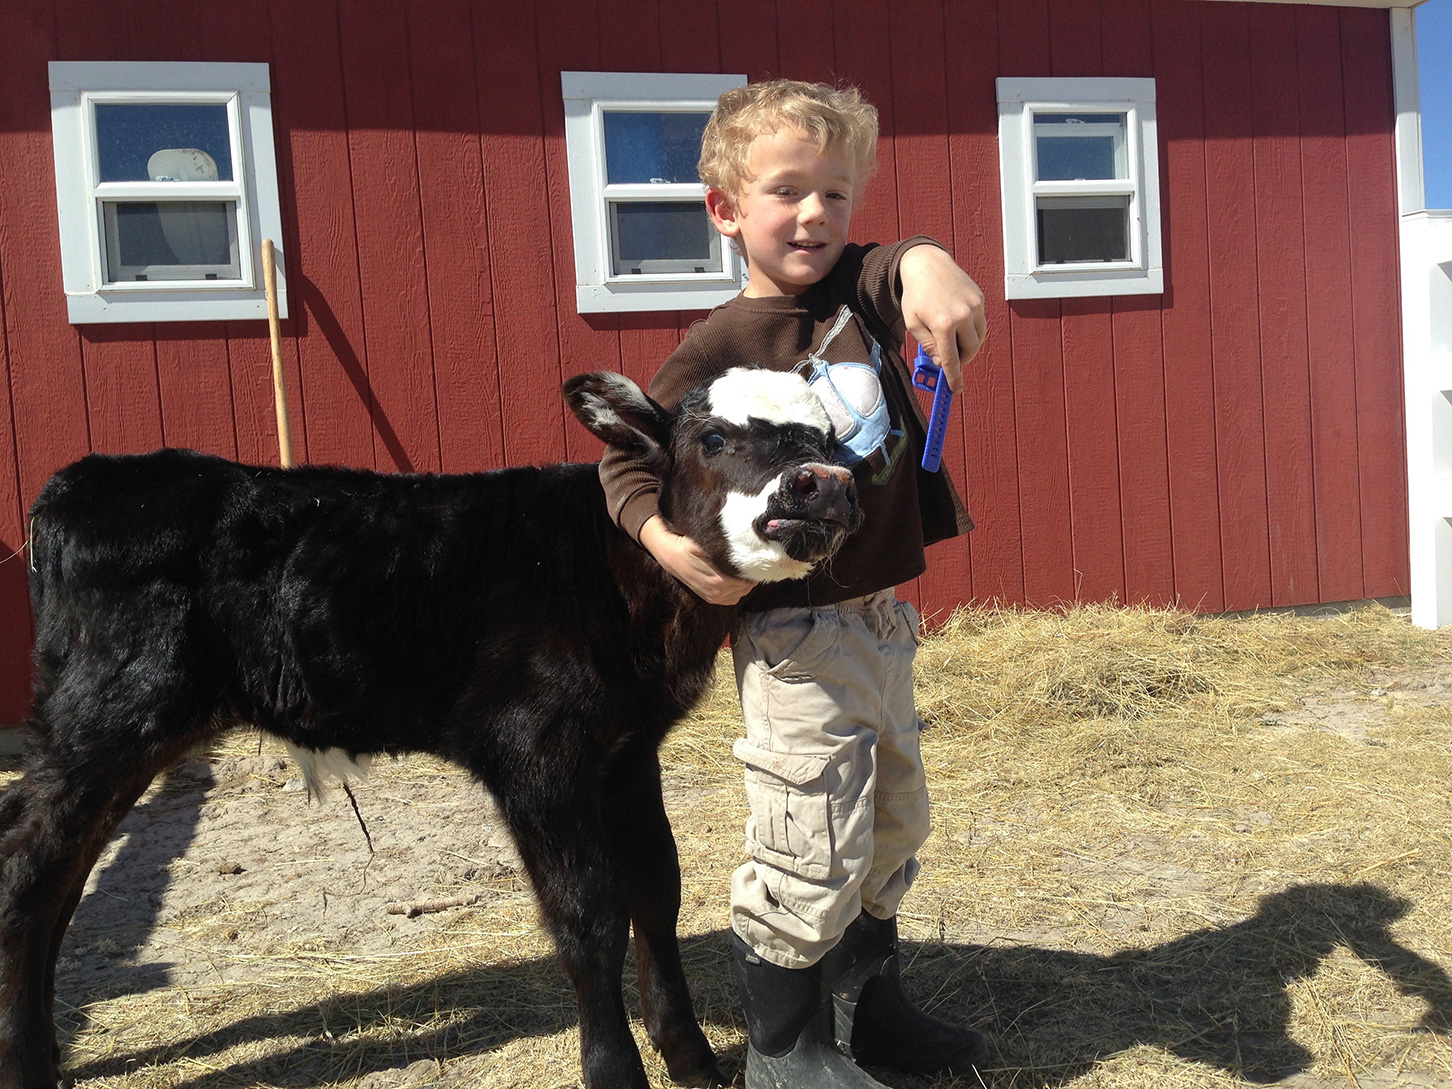 Little boy holding the calf head in front of a red building with windows